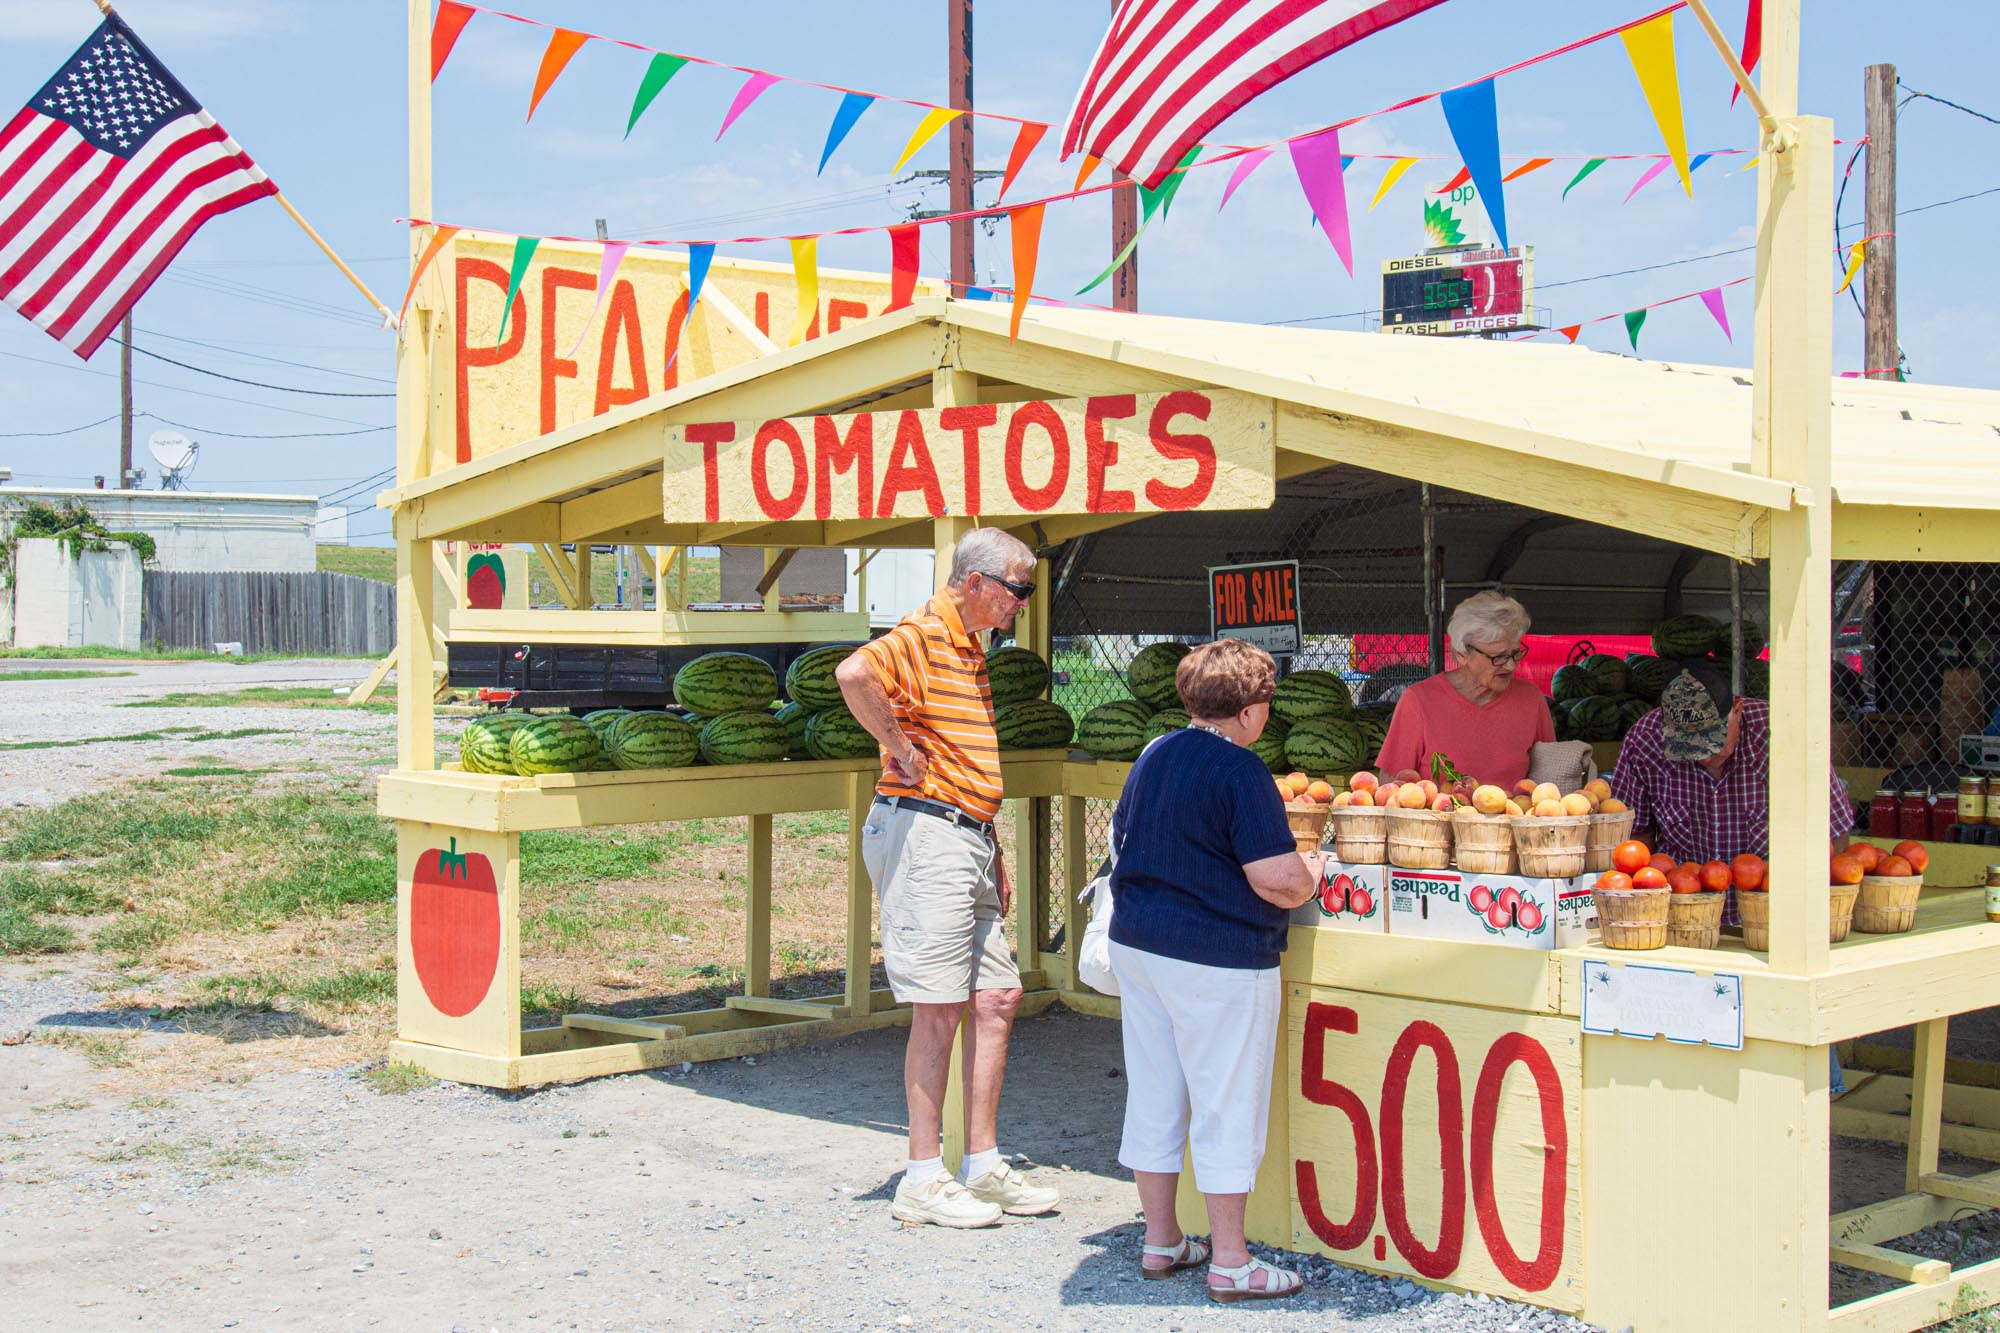 two customers buy produce at a stand in rural Arkansas